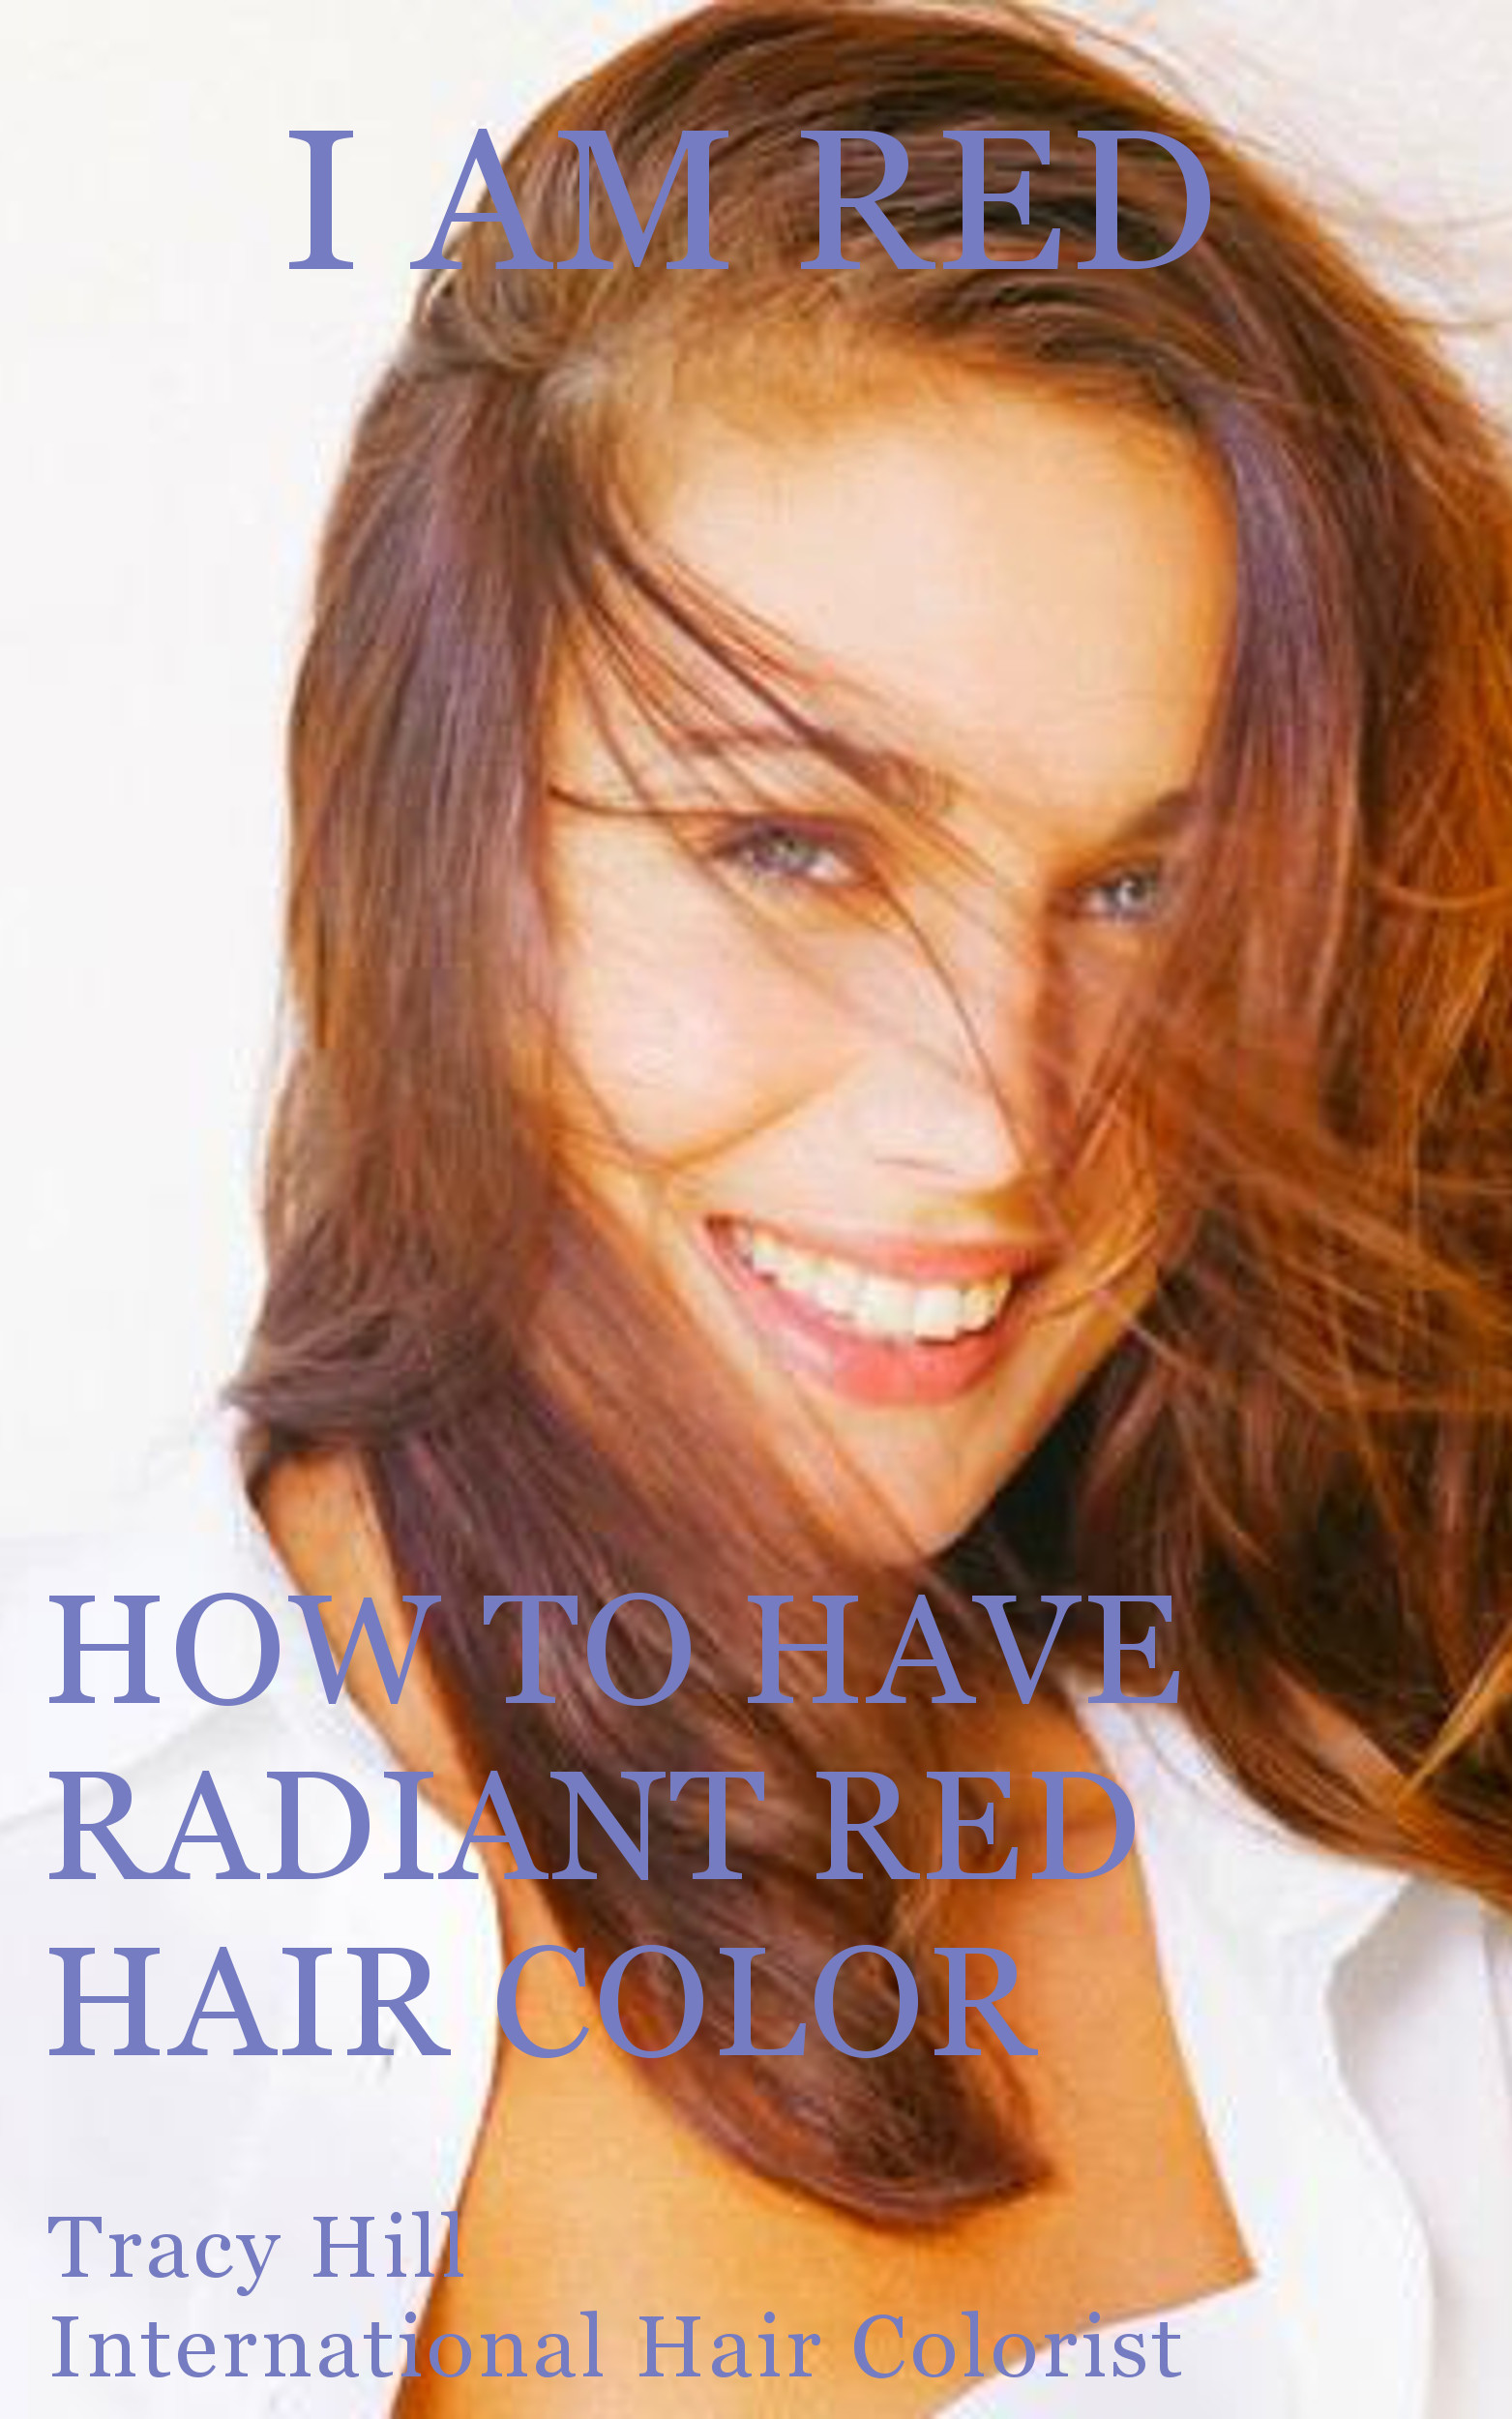 Smashwords I Am Red How To Have Radiant Red Hair Color A Book